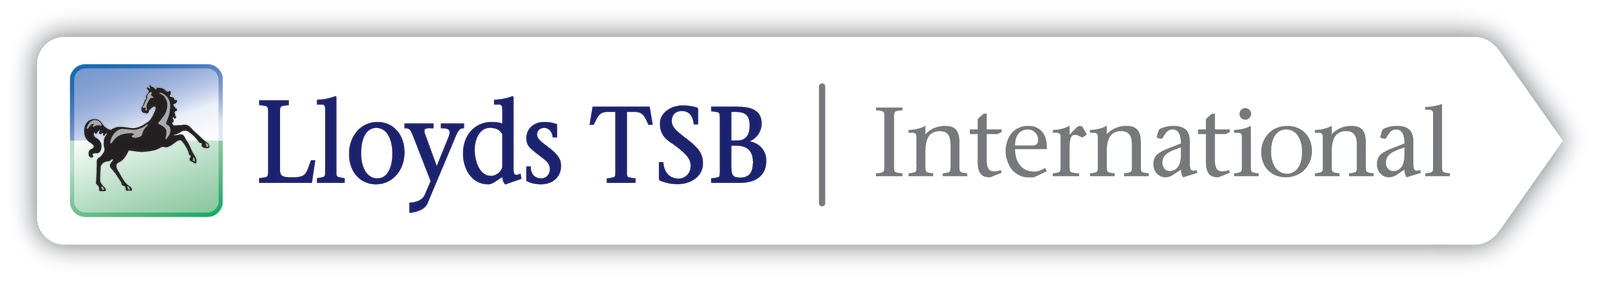 Contact US >> Lloyds TSB International logo | RealWire RealResource